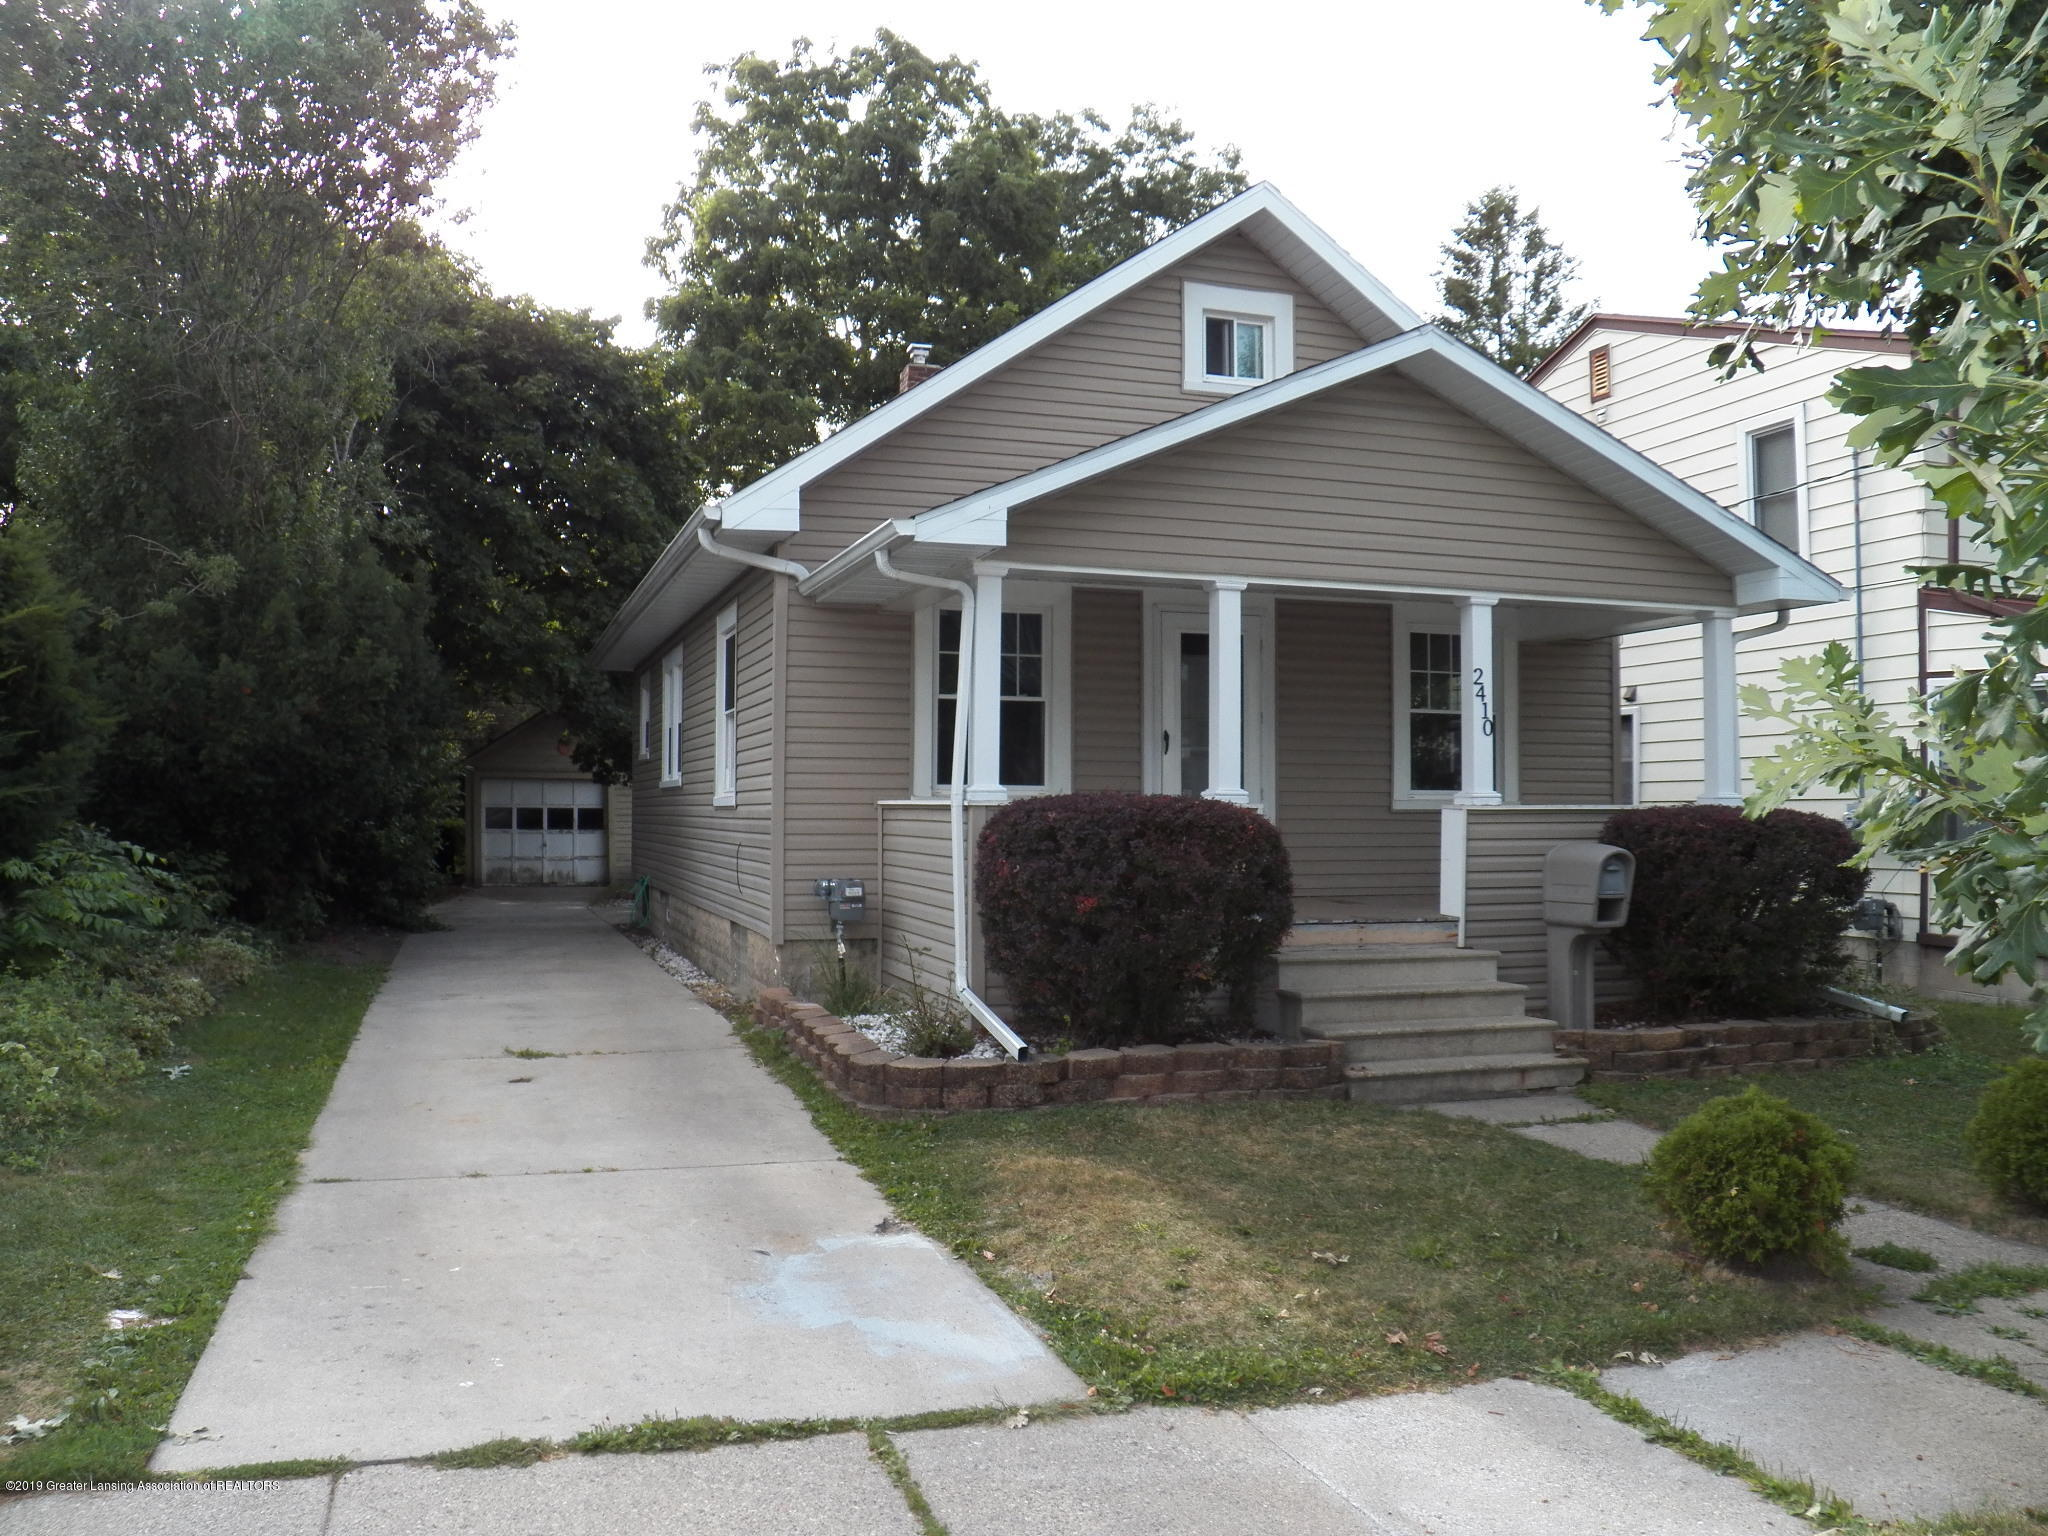 2410 Maplewood Ave - front - 1